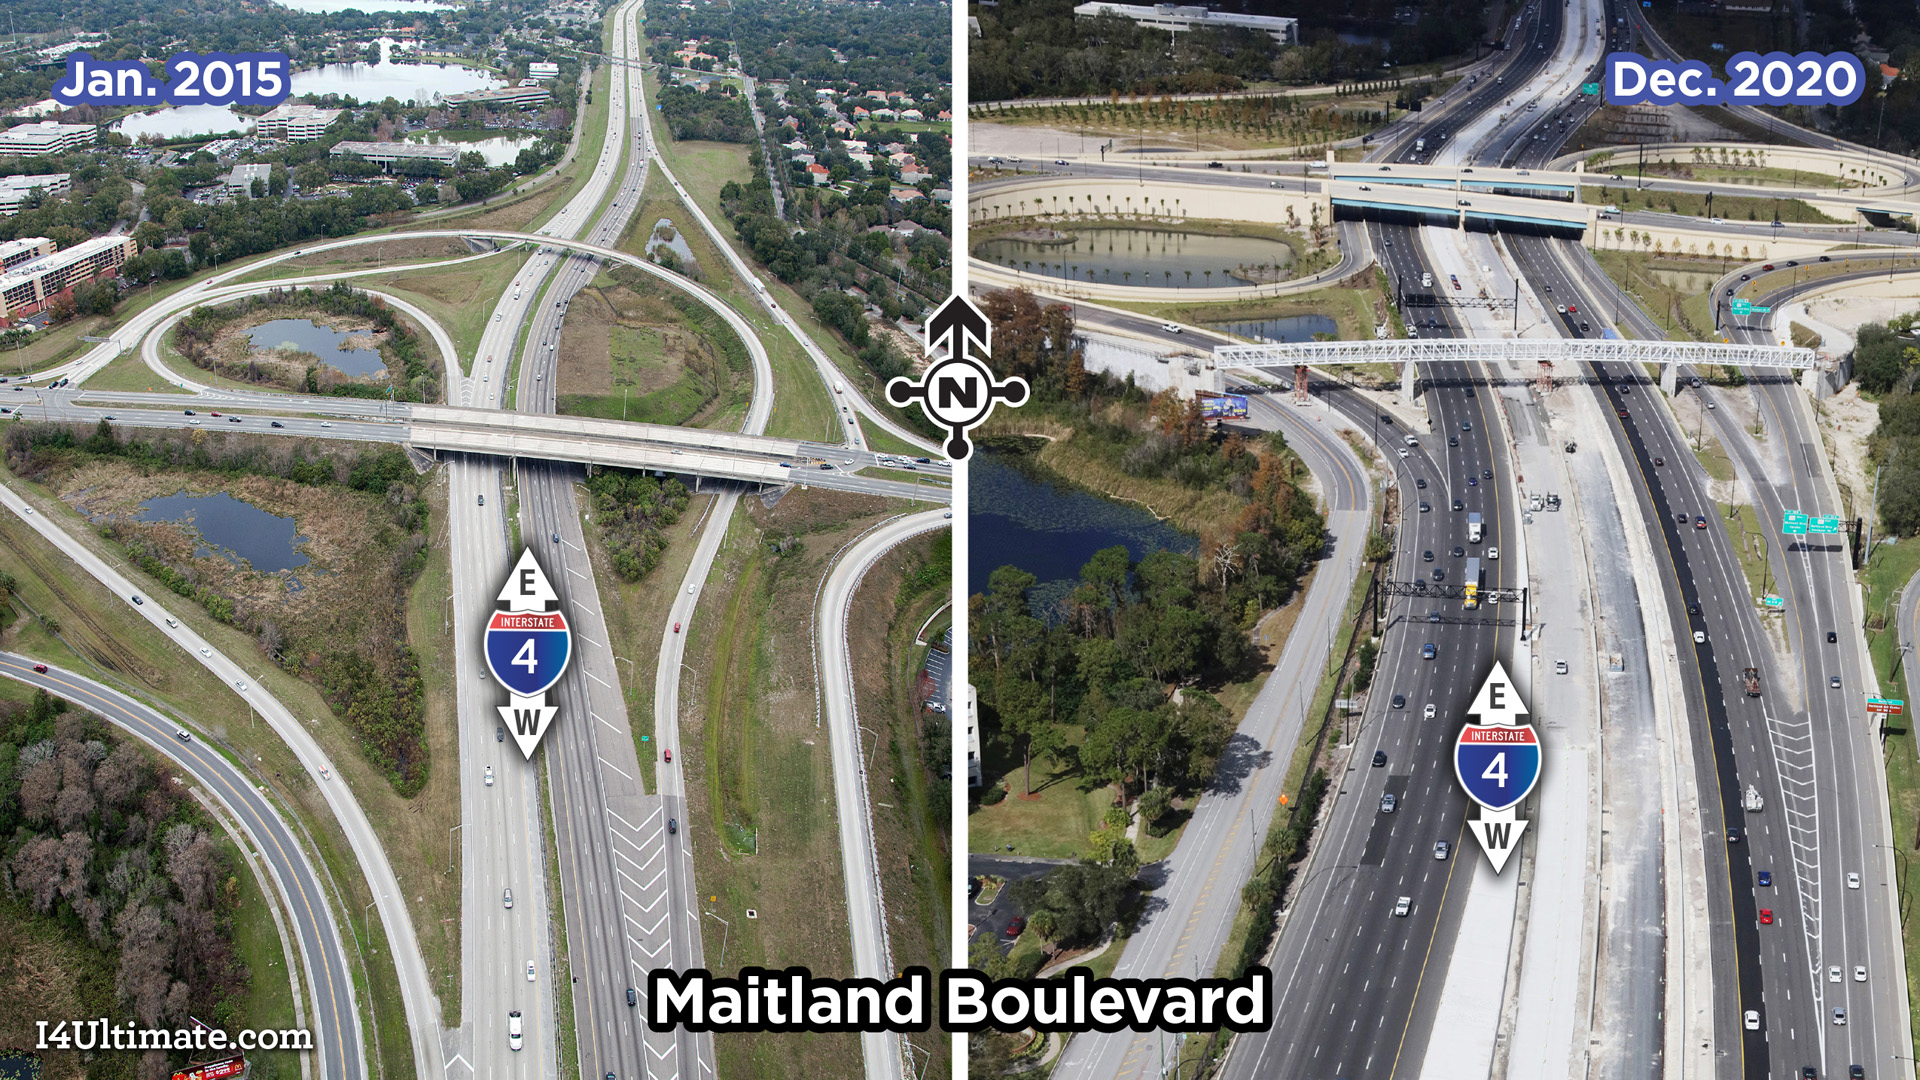 4738-I4Ultimate-GUL-campaign-images-20210212-20-Maintland-Boulevard